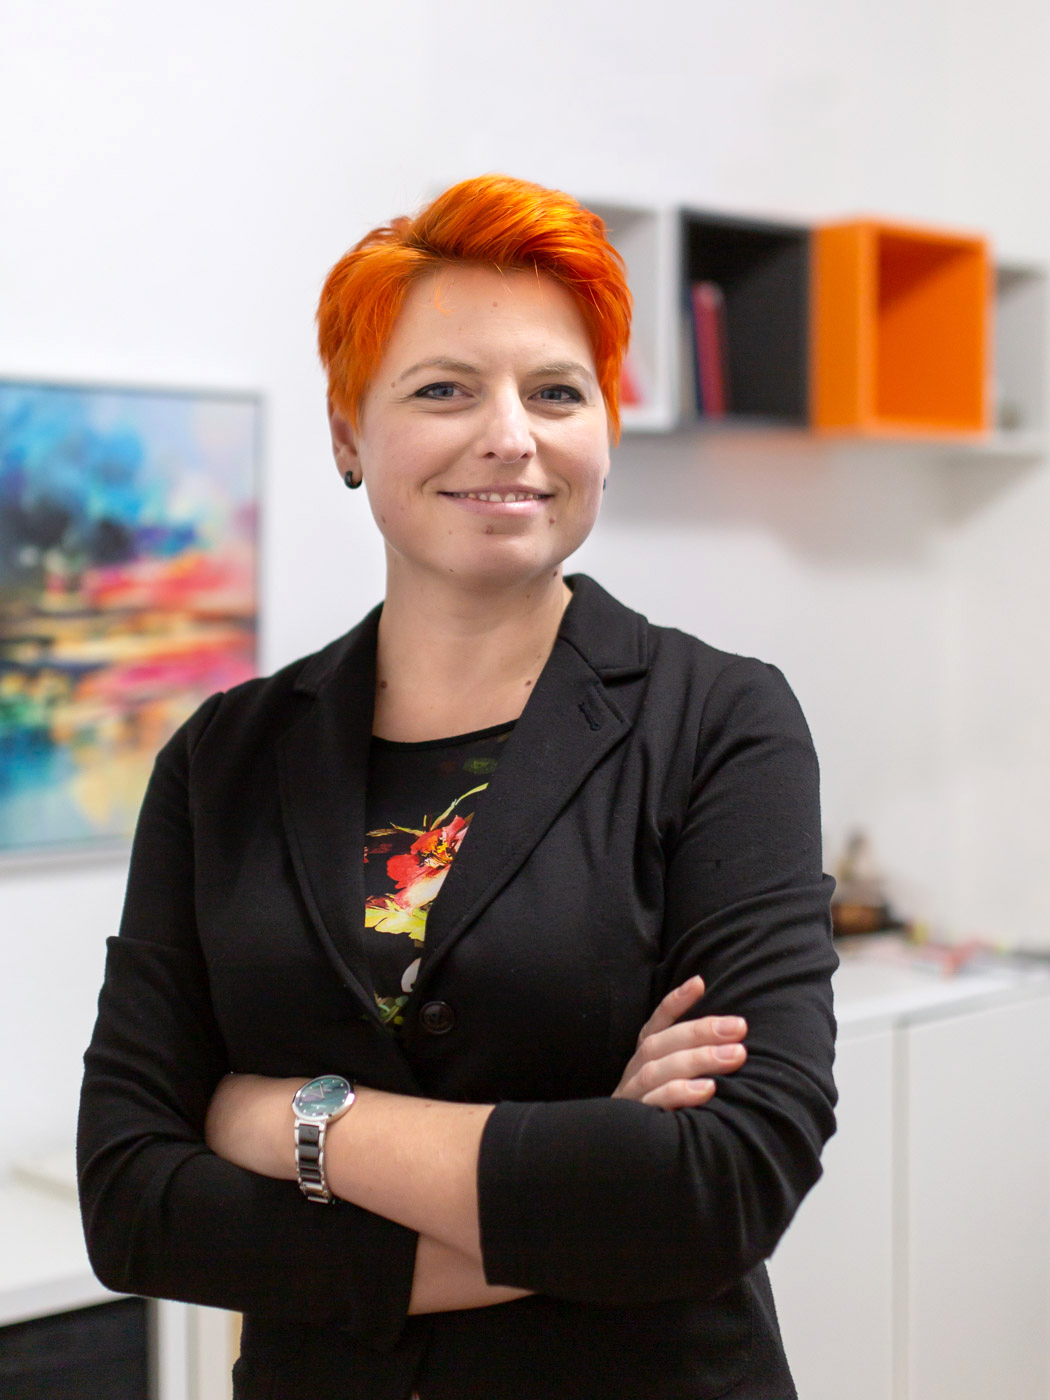 Marina Hauer branding specialist for coaches